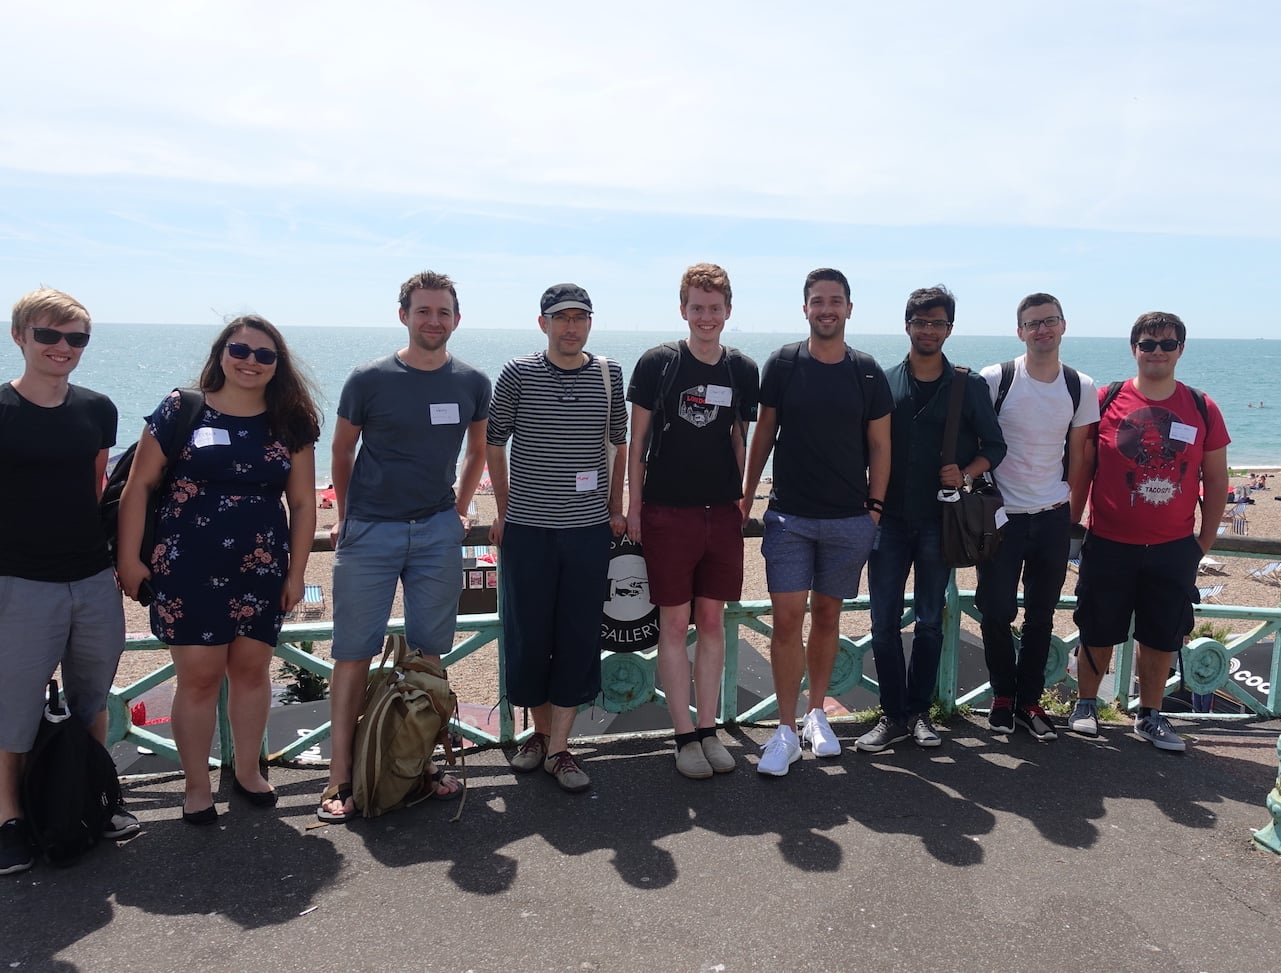 Brighton Ruby 2017 - Unboxed developers on the seafront